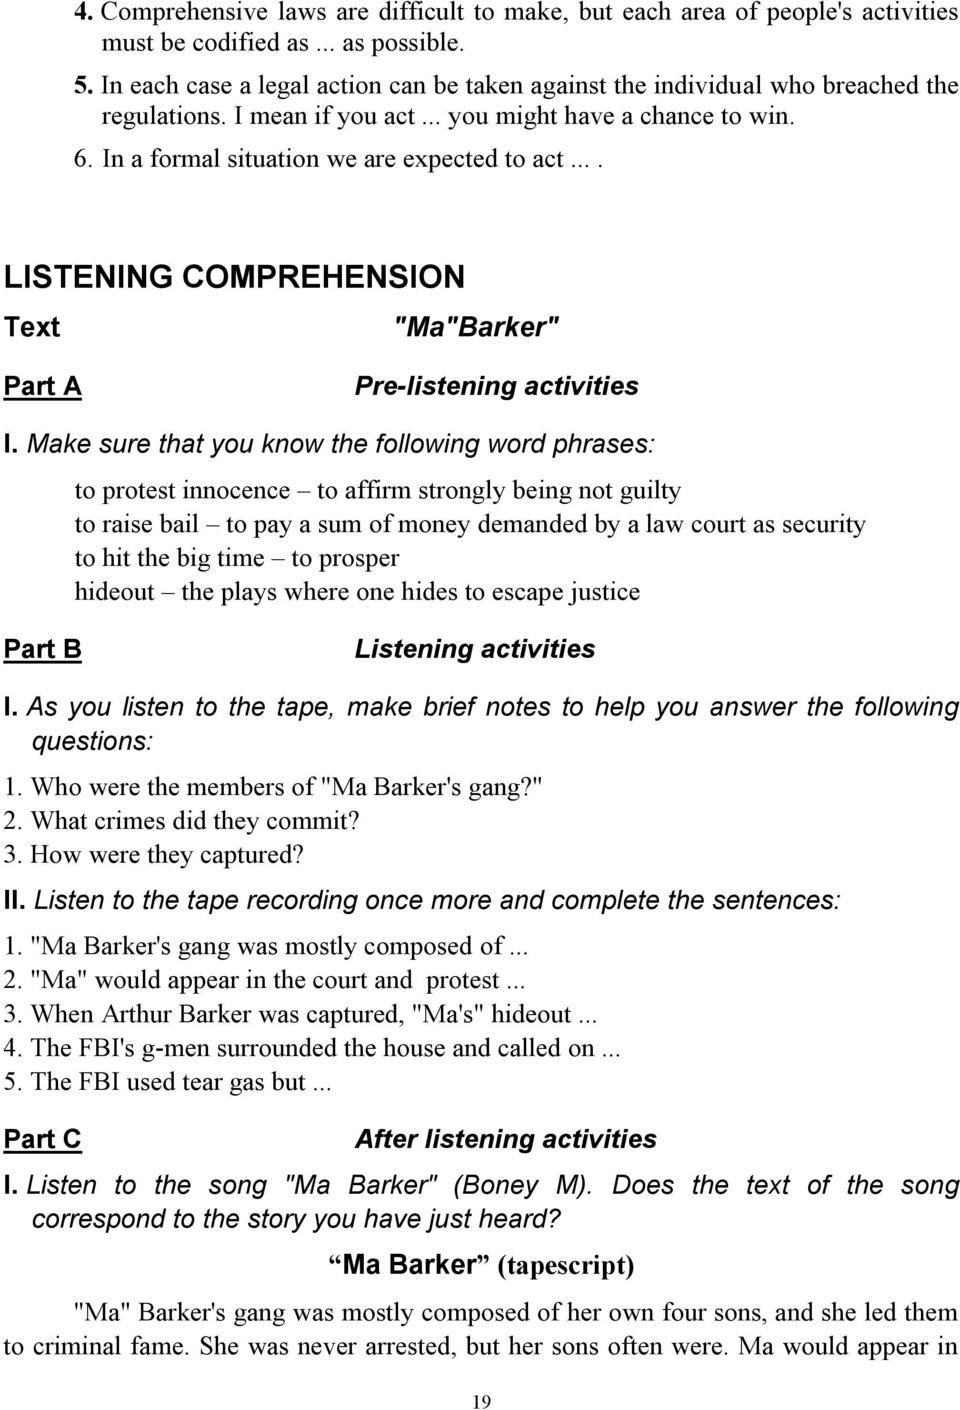 "... LISTENING COMPREHENSION Text ""Ma""Barker"" Part A Pre-listening activities I."